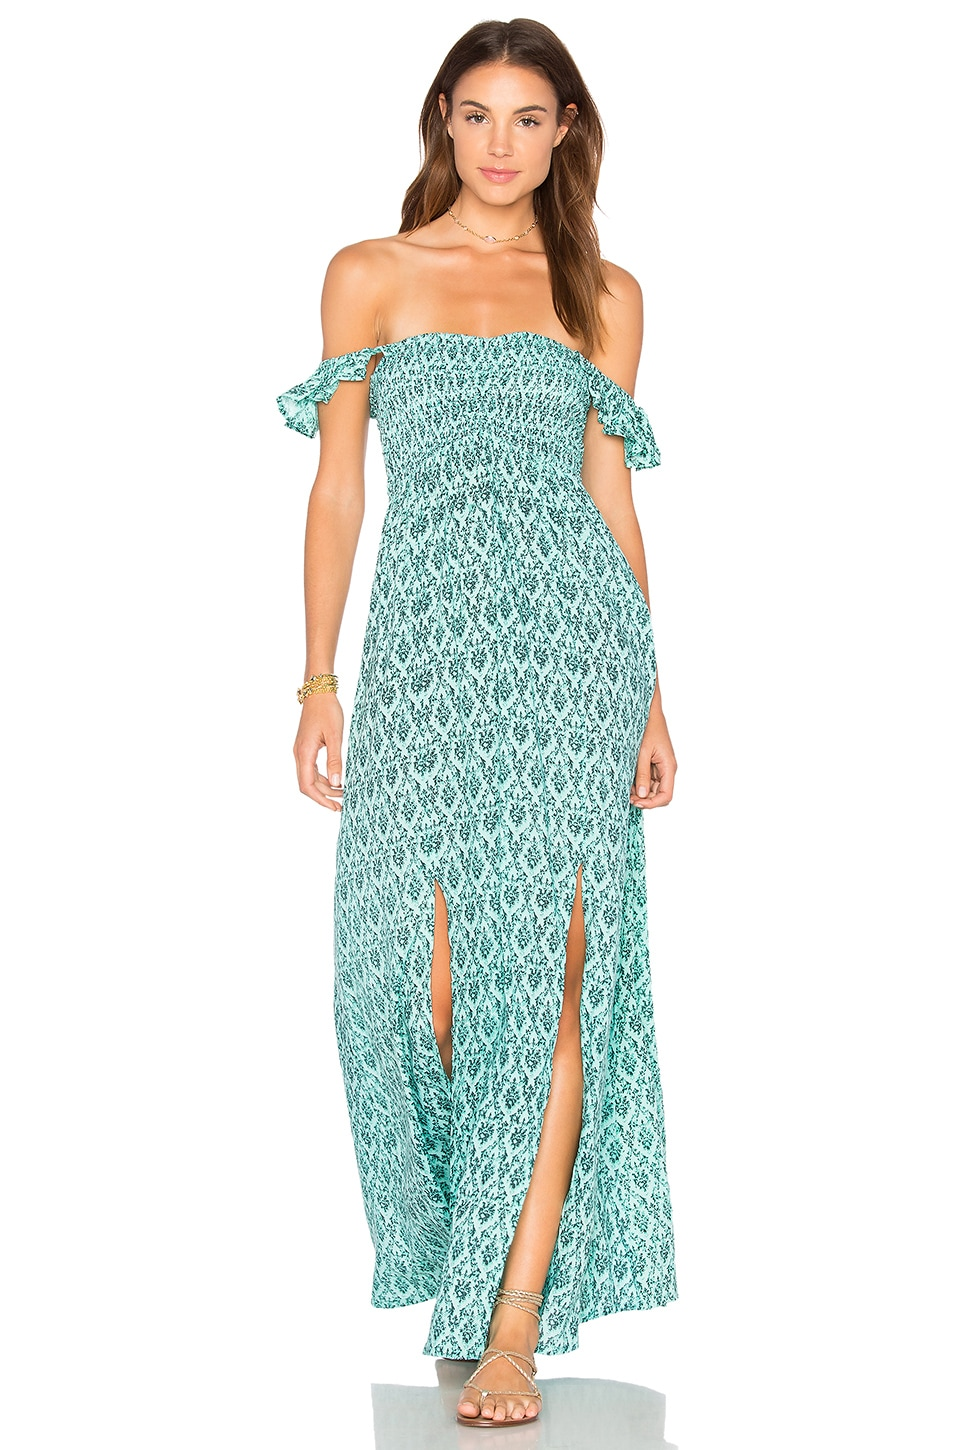 Tiare Hawaii Hollie Off The Shoulder Maxi in Turkish Teal